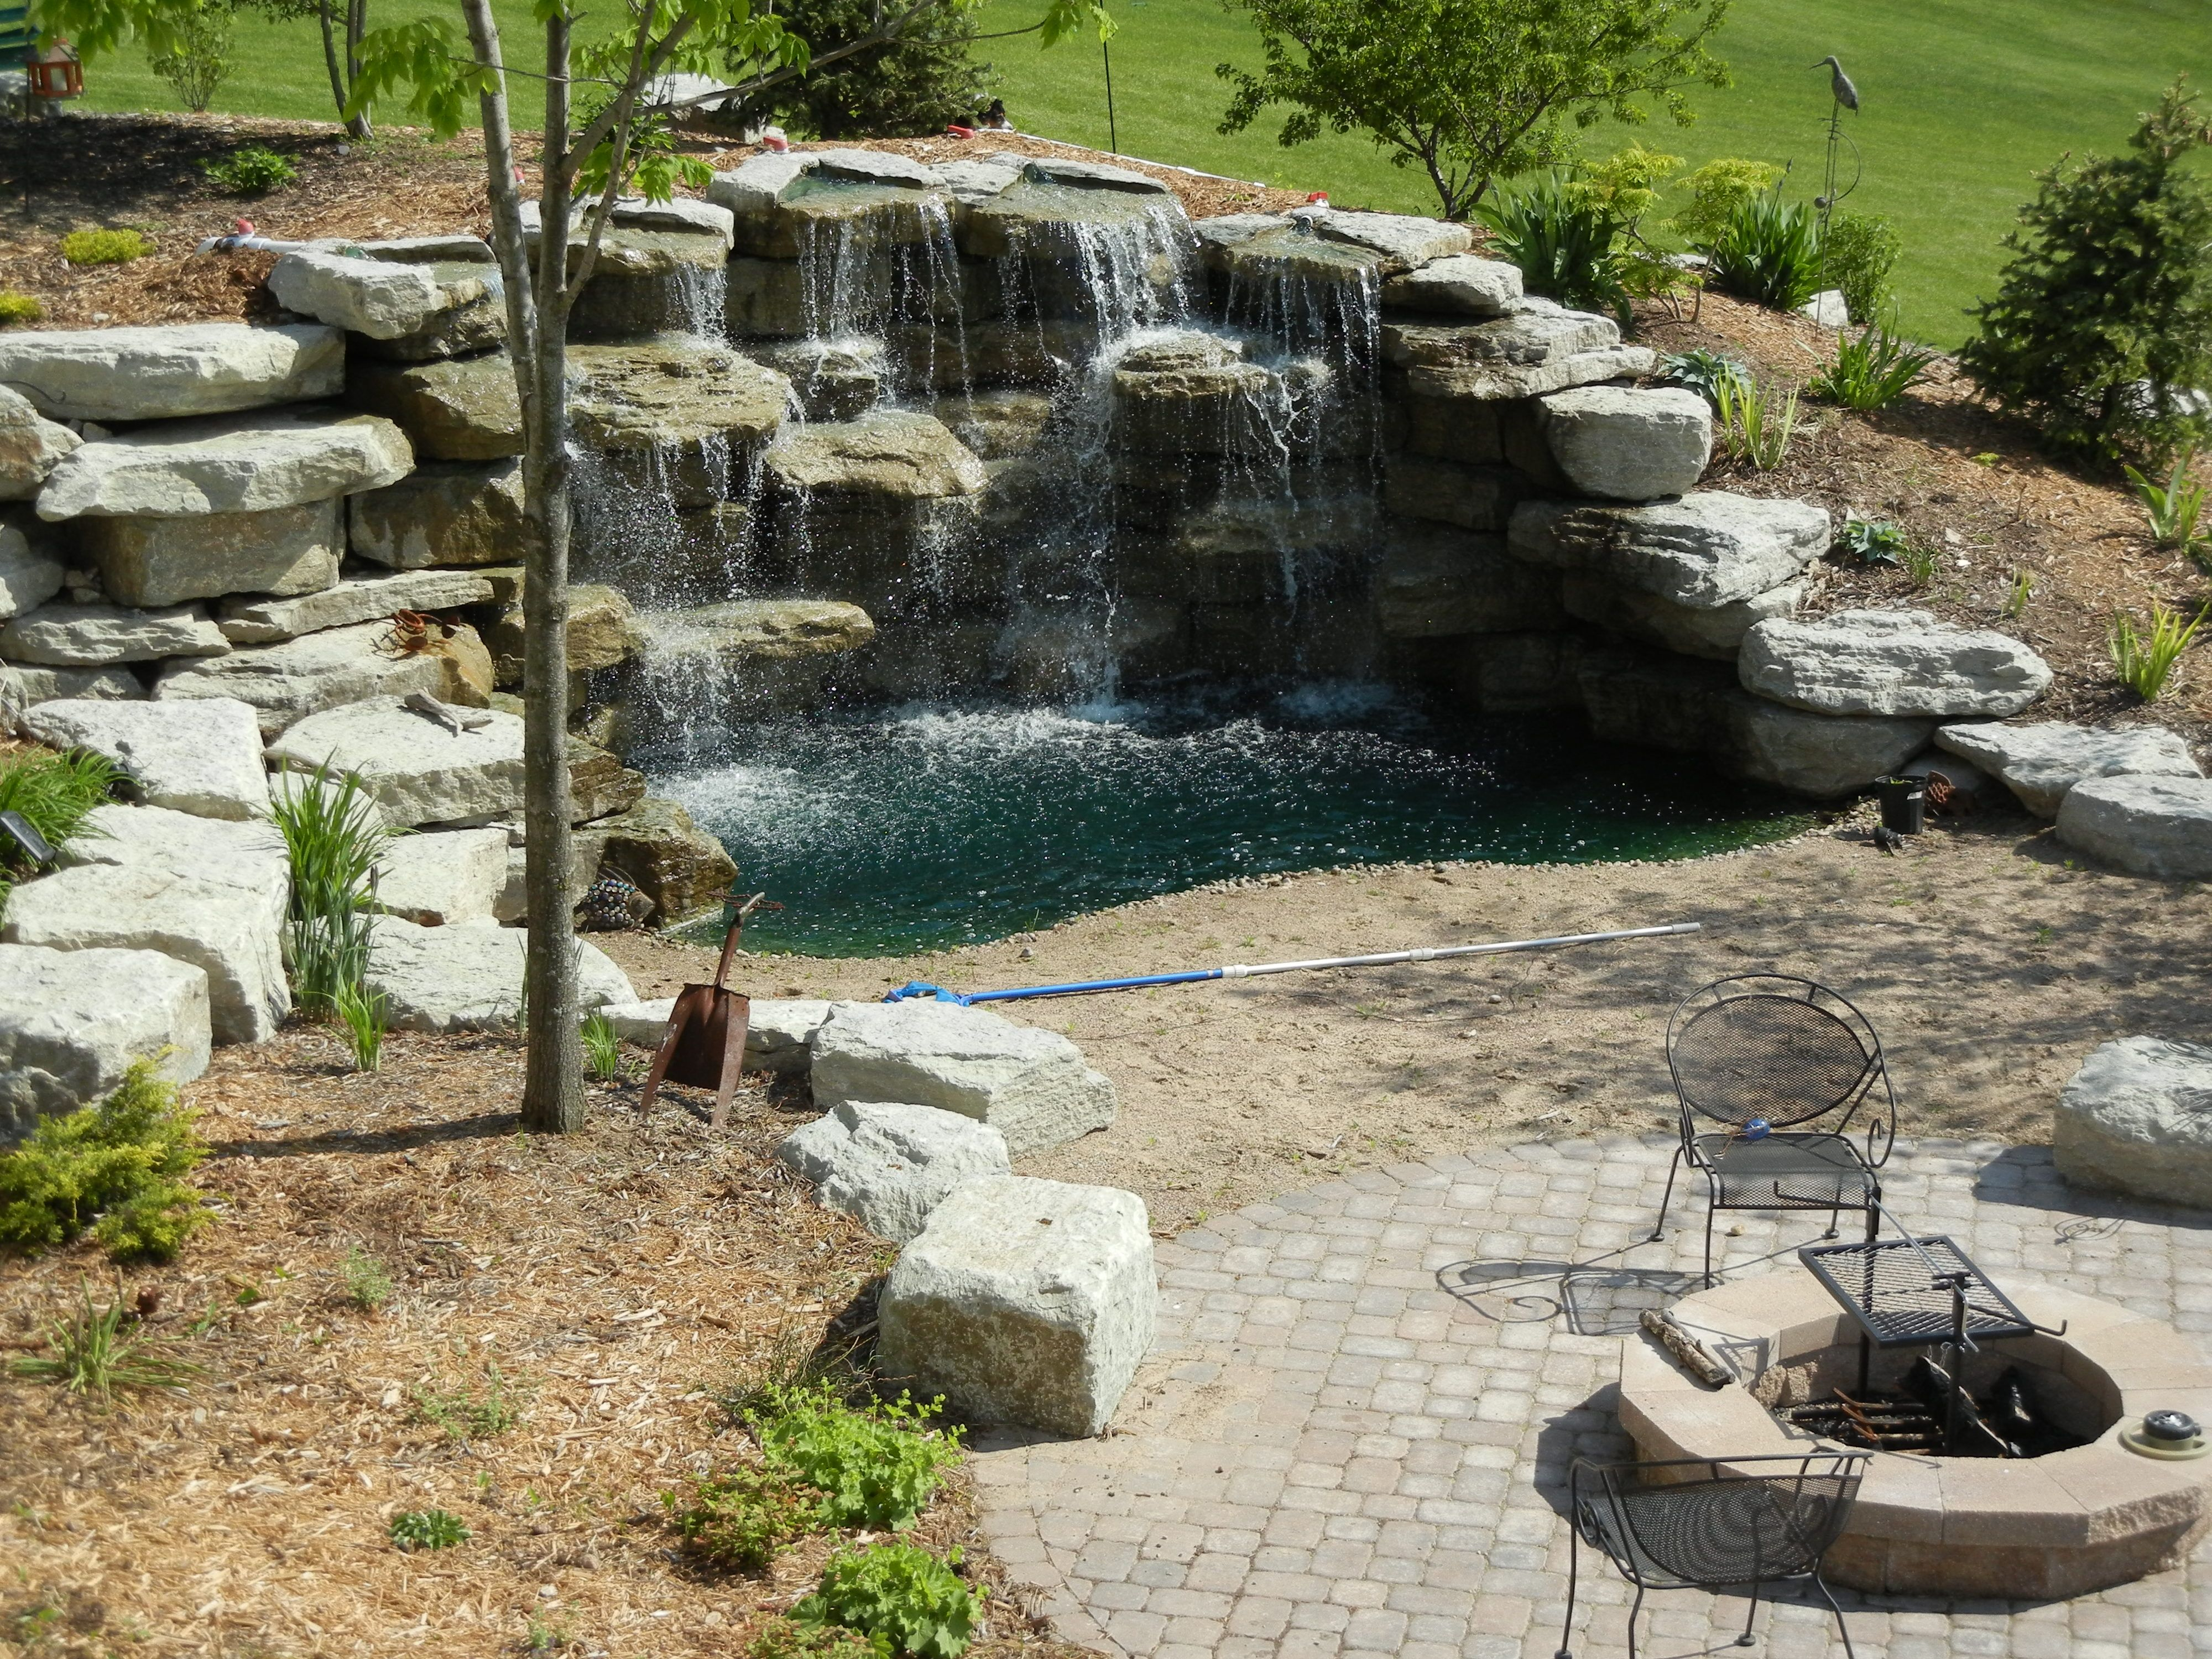 Backyard Waterfall, Beach U0026 Patio With Fire Pit, This Would Be Awesome, But